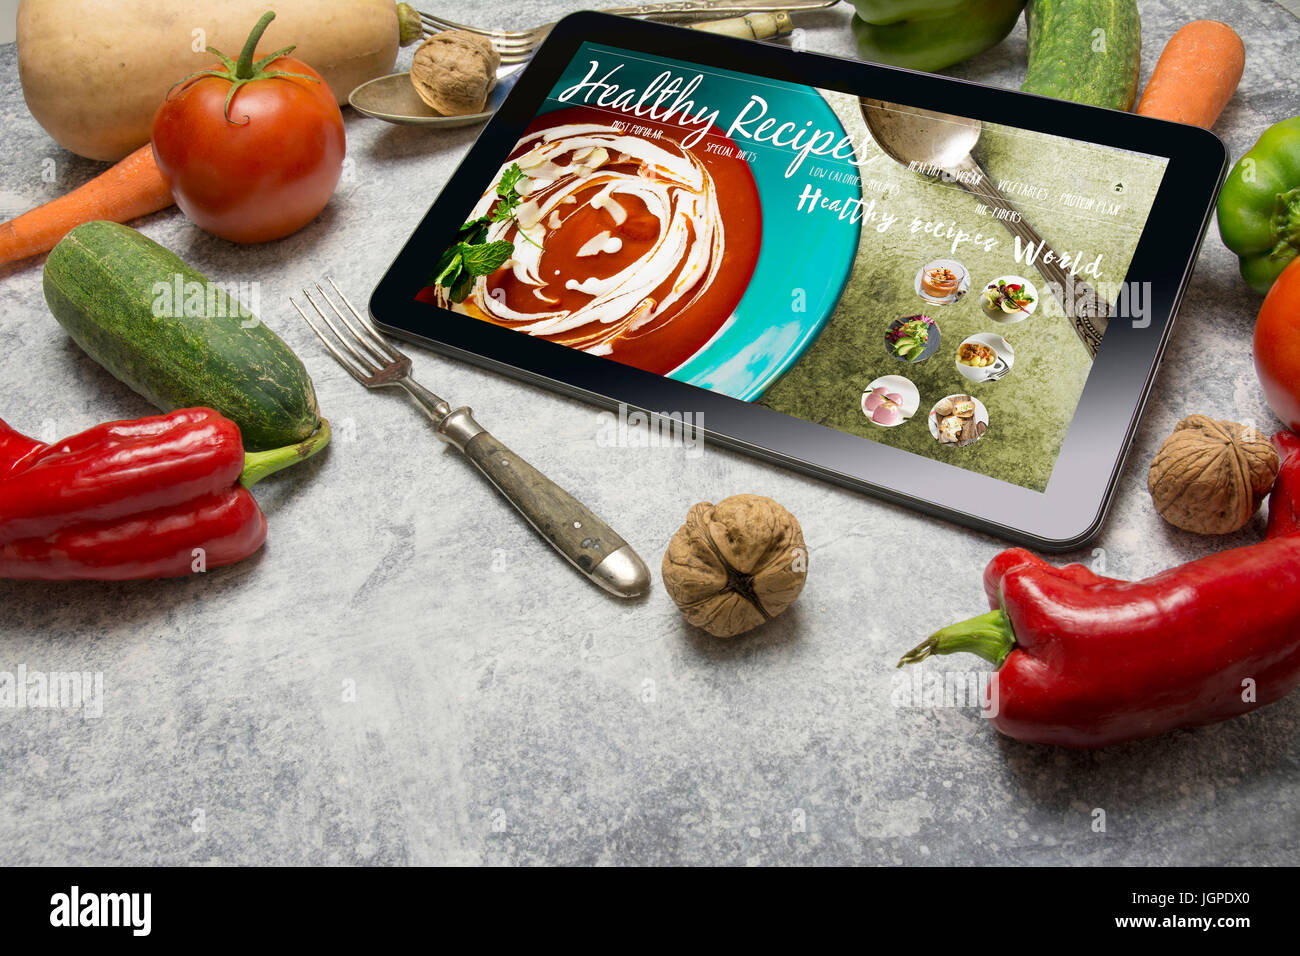 Tablet with healthy recipes blog on screen web with nutritious food tablet with healthy recipes blog on screen web with nutritious food on grunge background forumfinder Choice Image